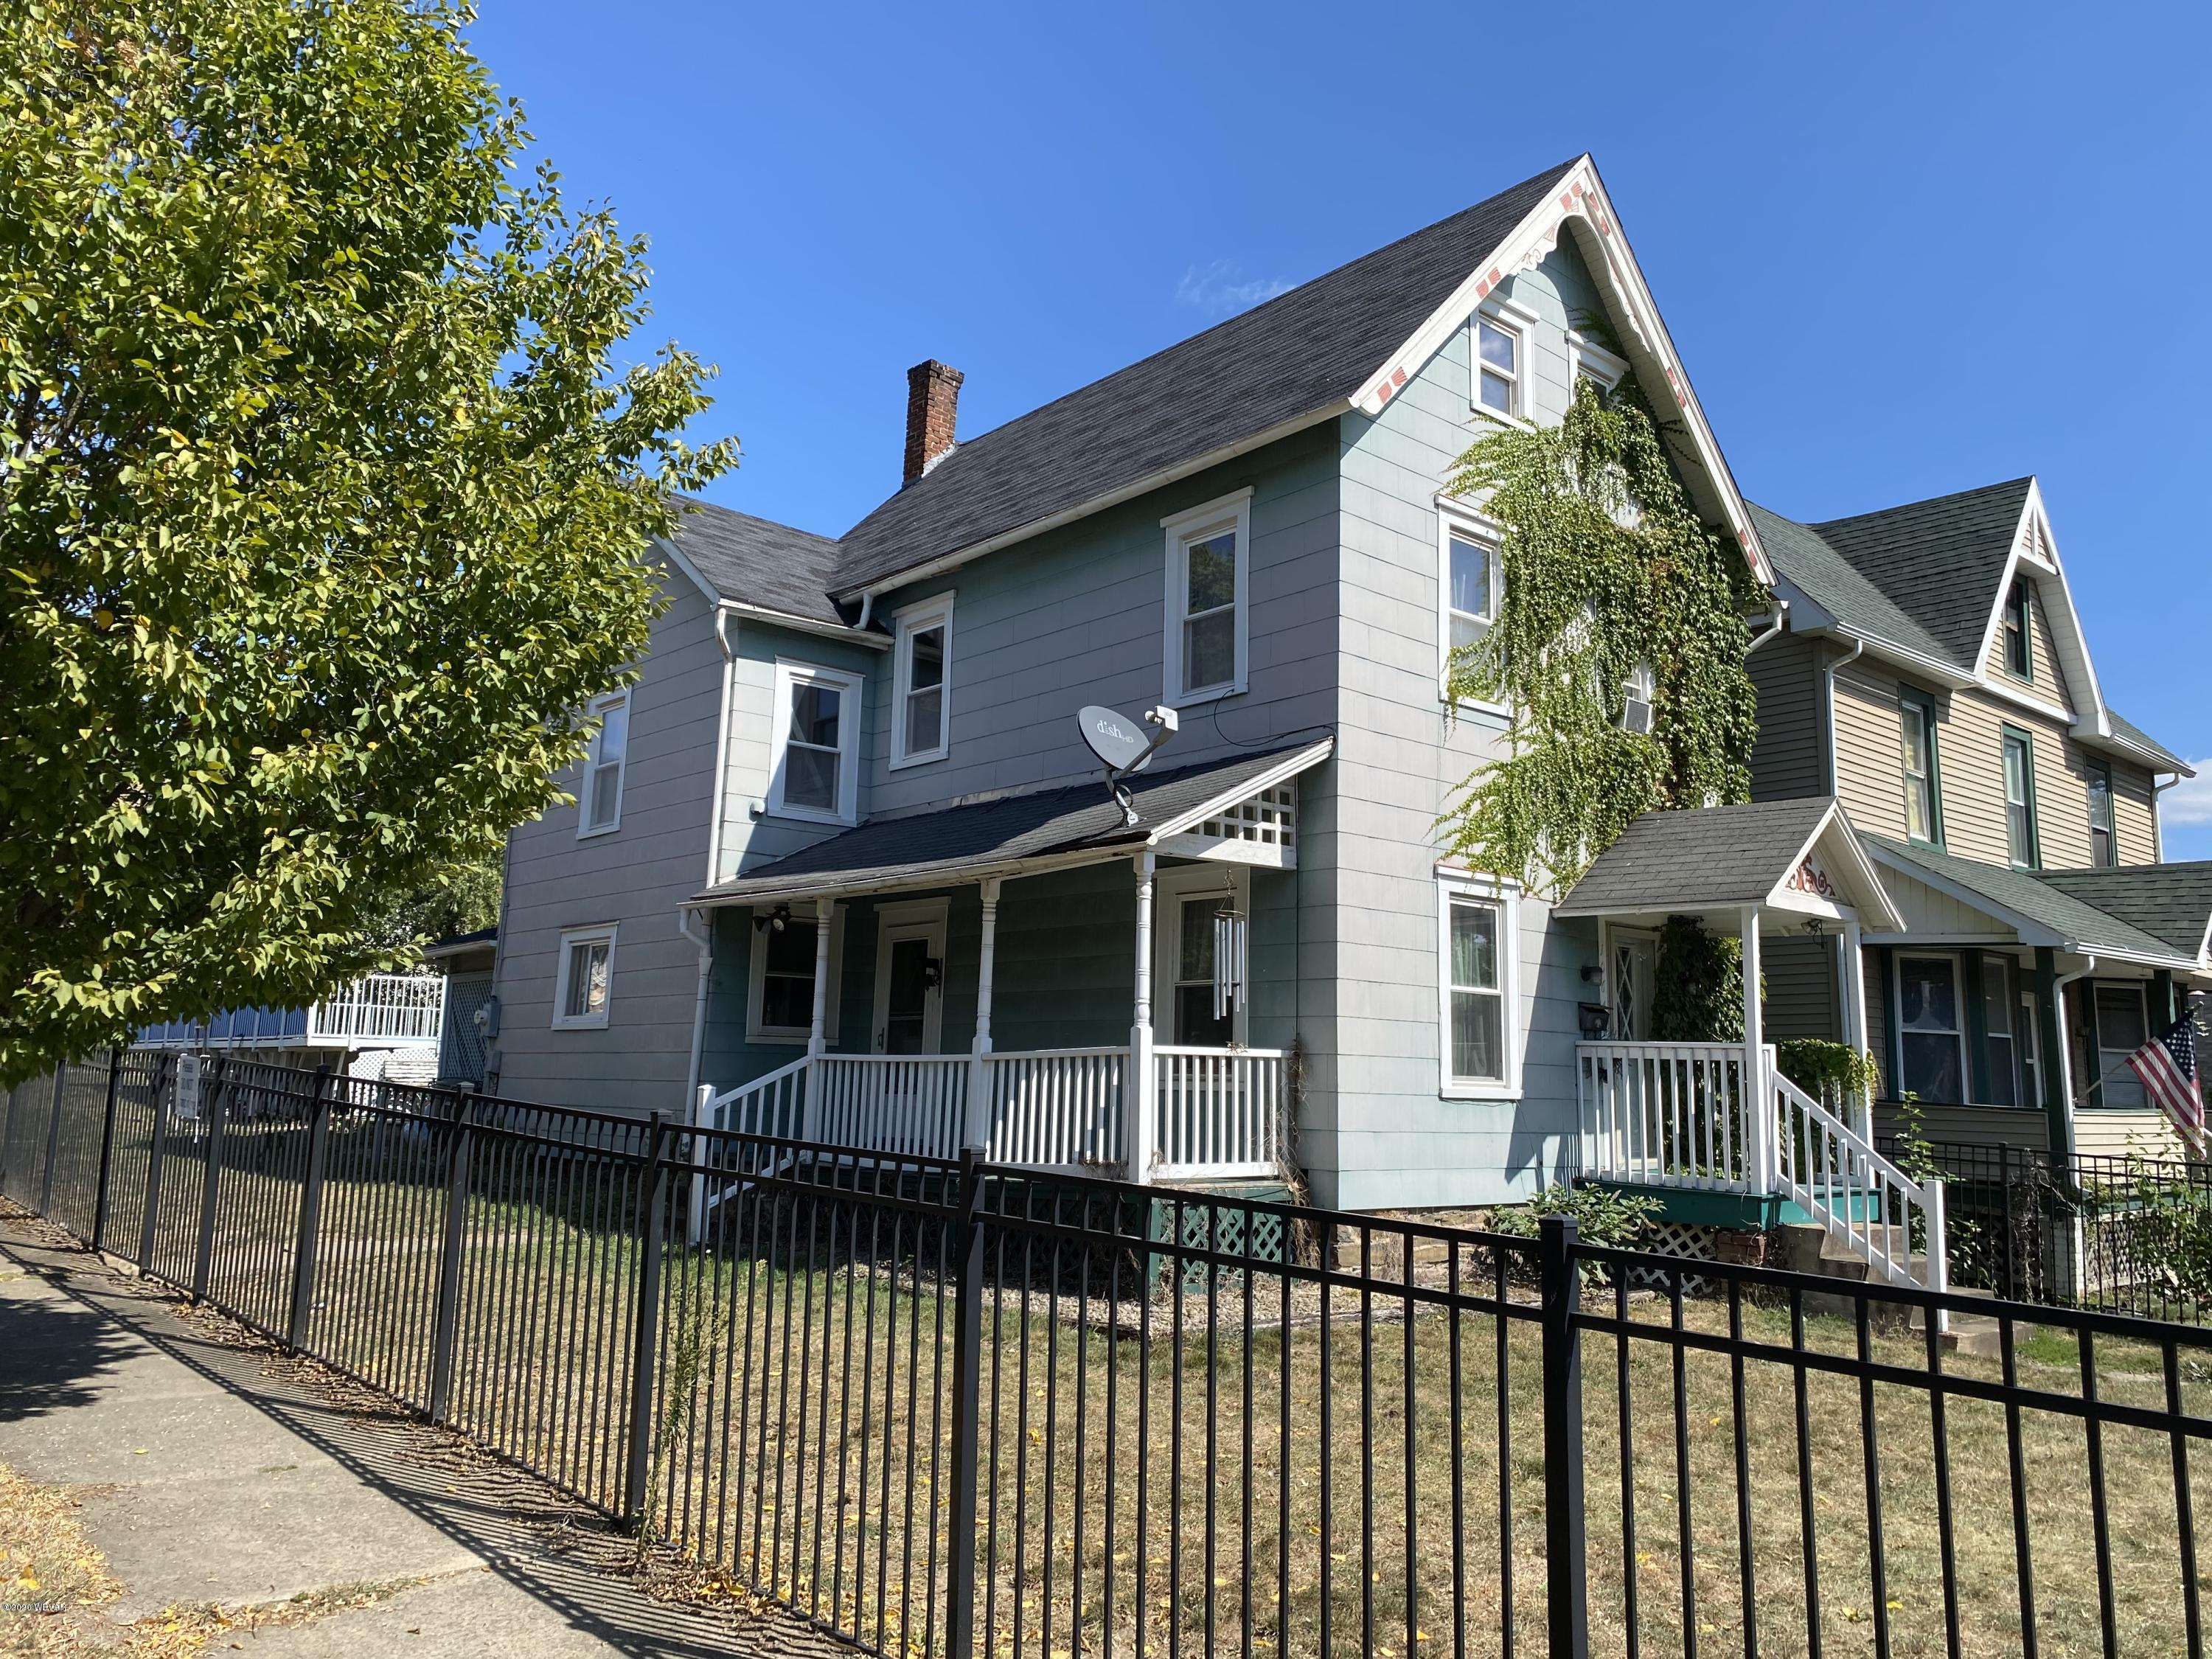 1064 HIGH STREET, Williamsport, PA 17701, 3 Bedrooms Bedrooms, ,2 BathroomsBathrooms,Residential,For sale,HIGH,WB-91364